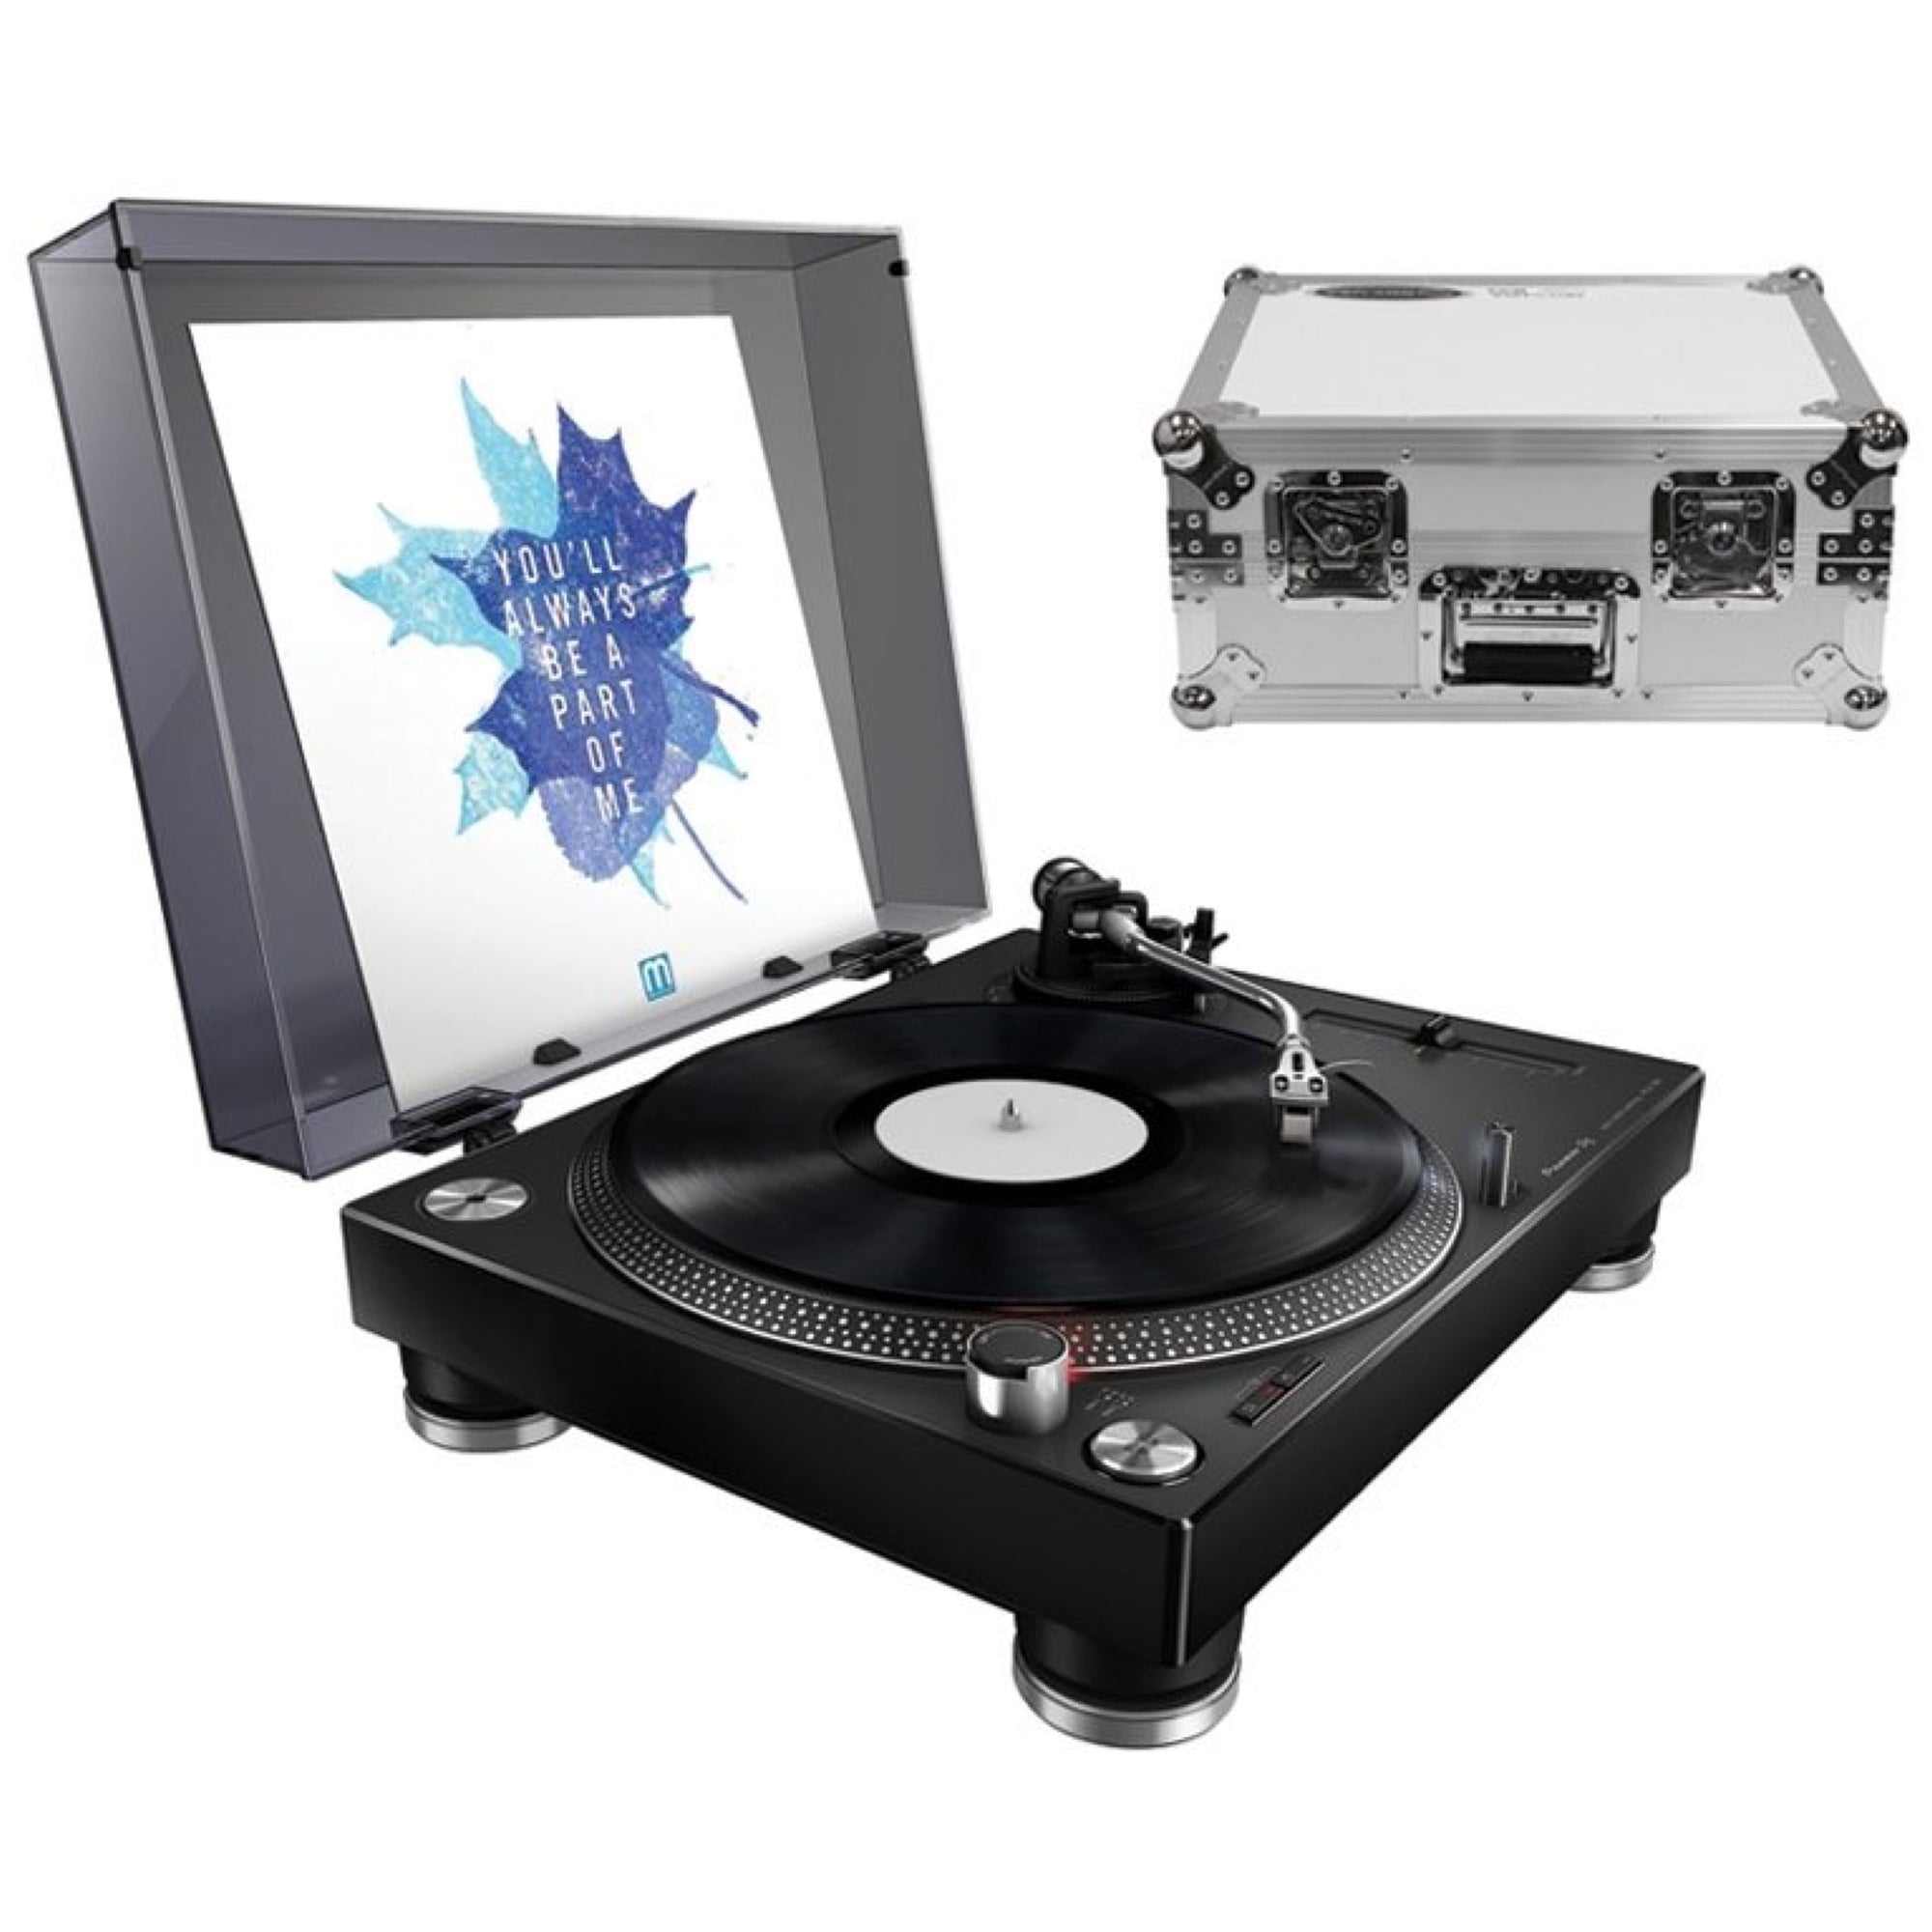 Pioneer PLX-500 Direct-Drive Turntable with USB, White, with Odyssey FZ1200 Case (White)